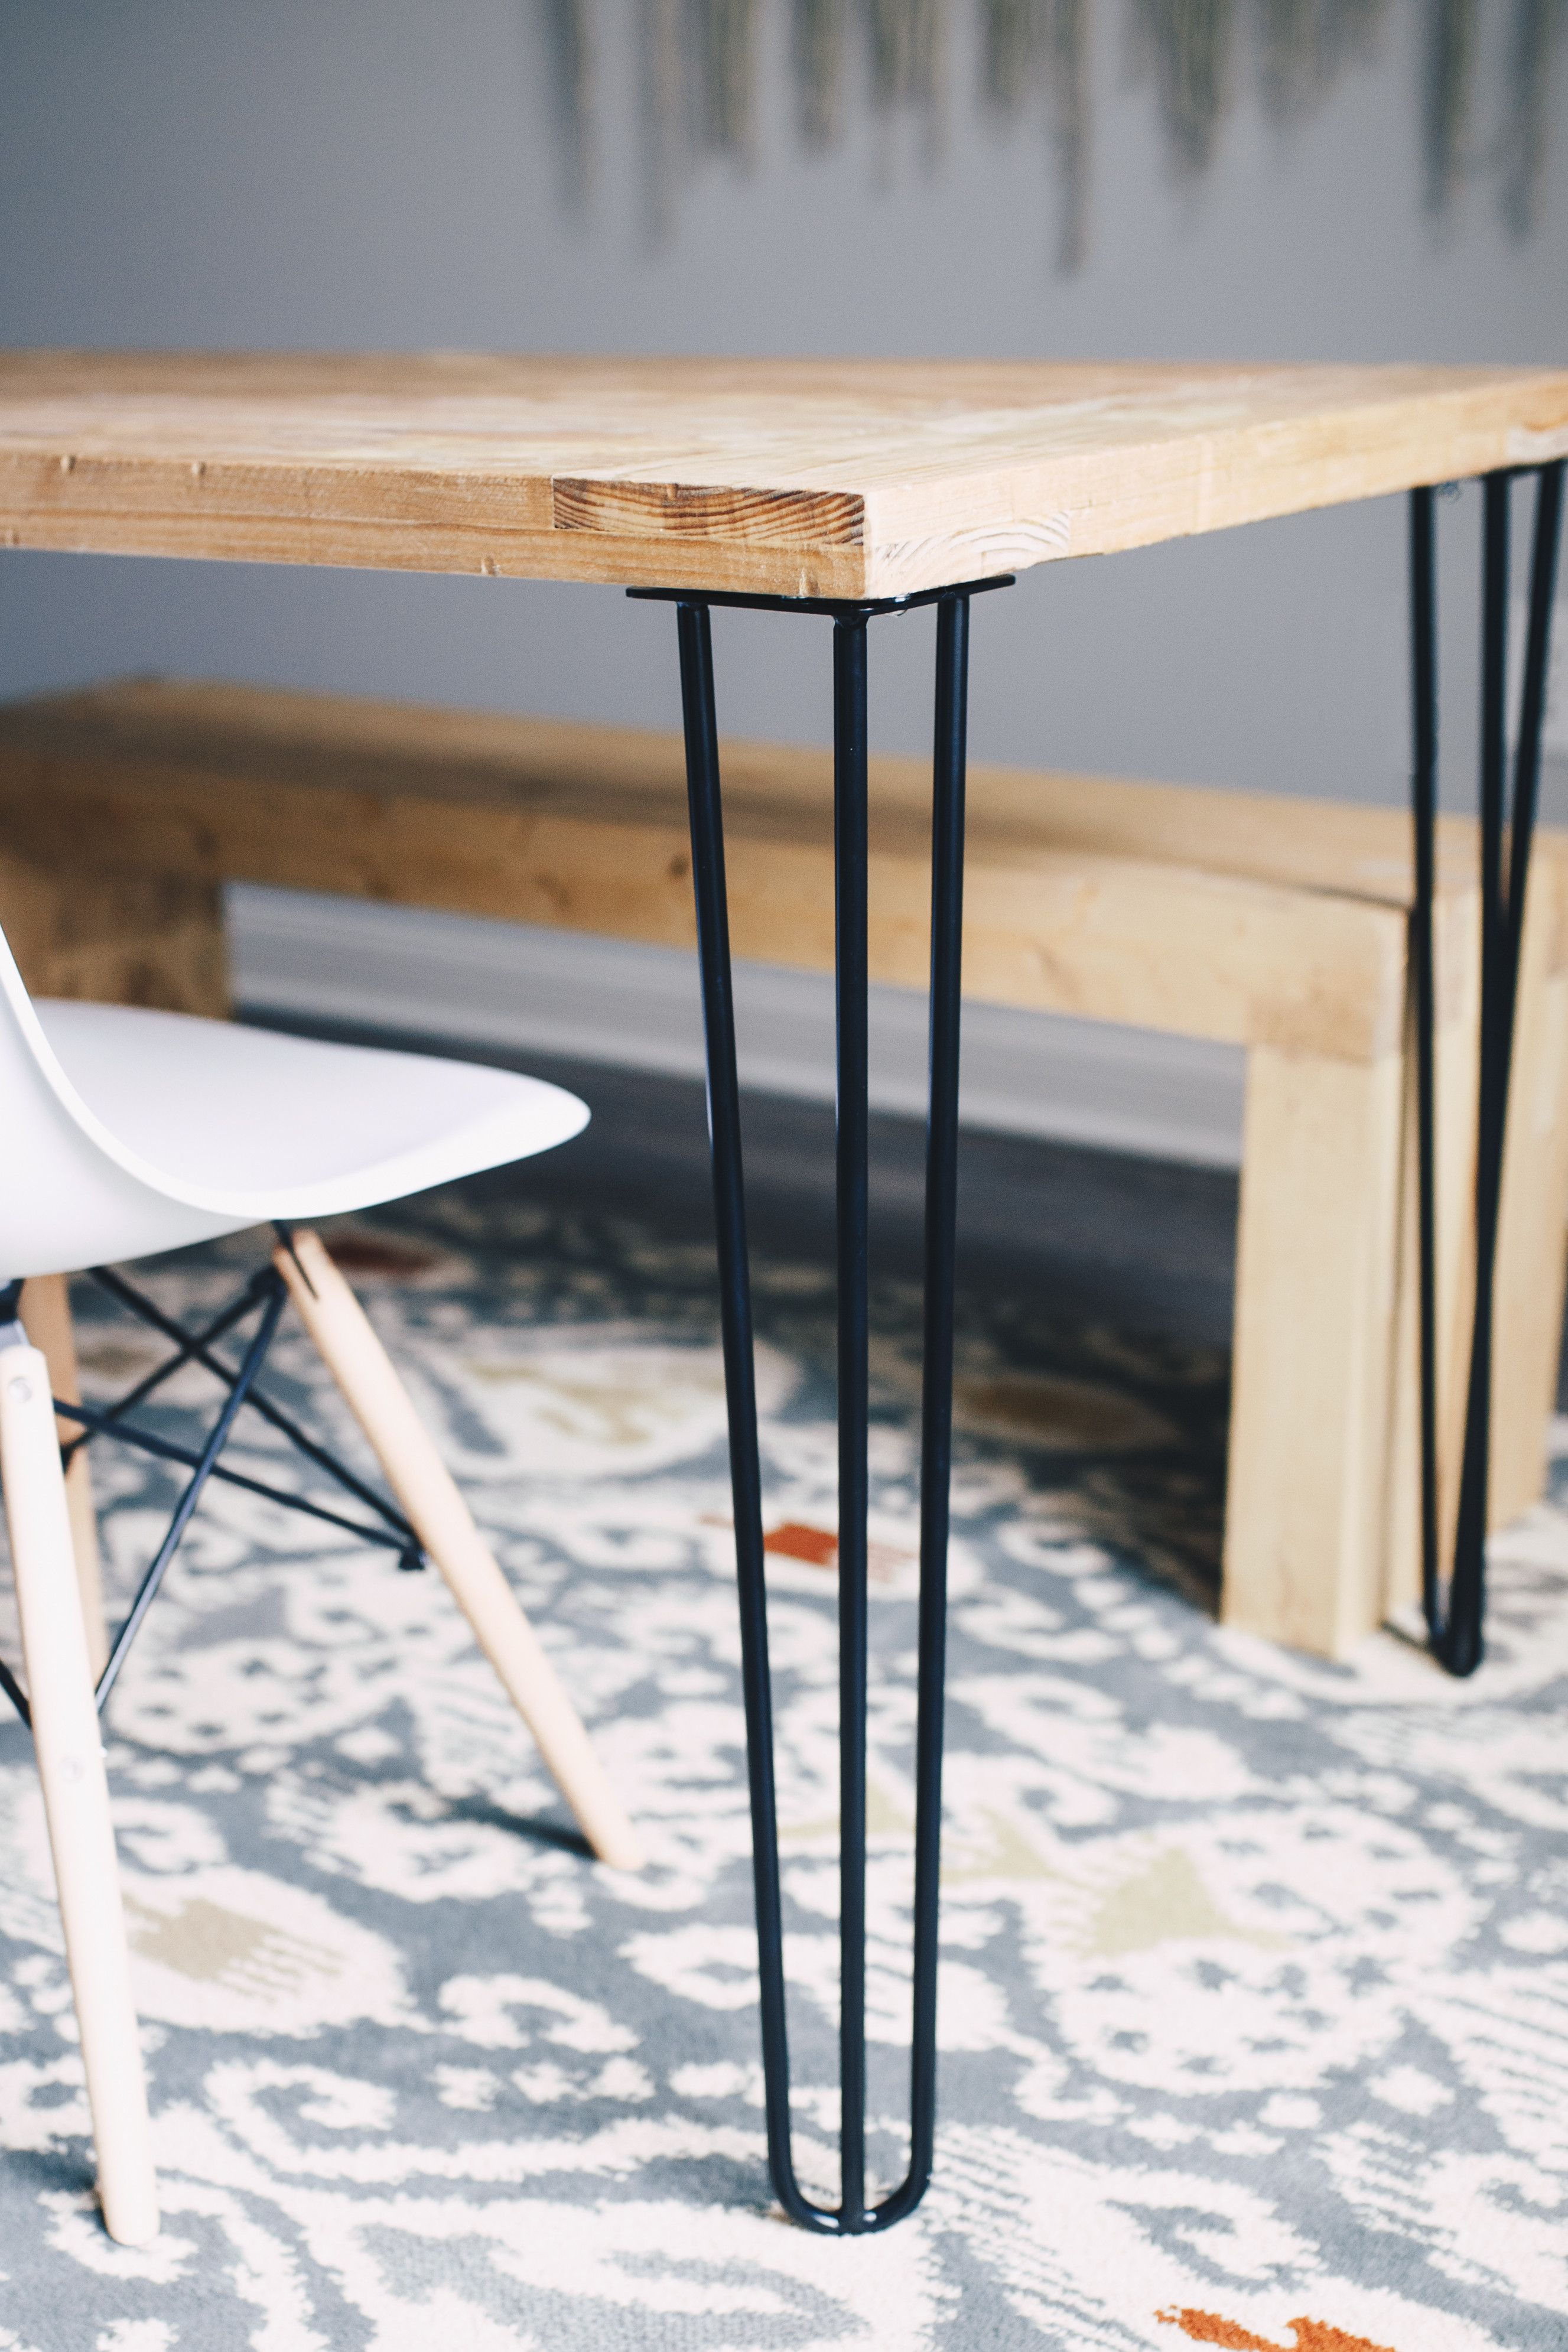 The Hairpin Leg Complements Industrial Modern And Mid Century Styles Alike Four Pre Drilled Holes In The Metal Table Legs Steel Table Legs Coffee Table Legs